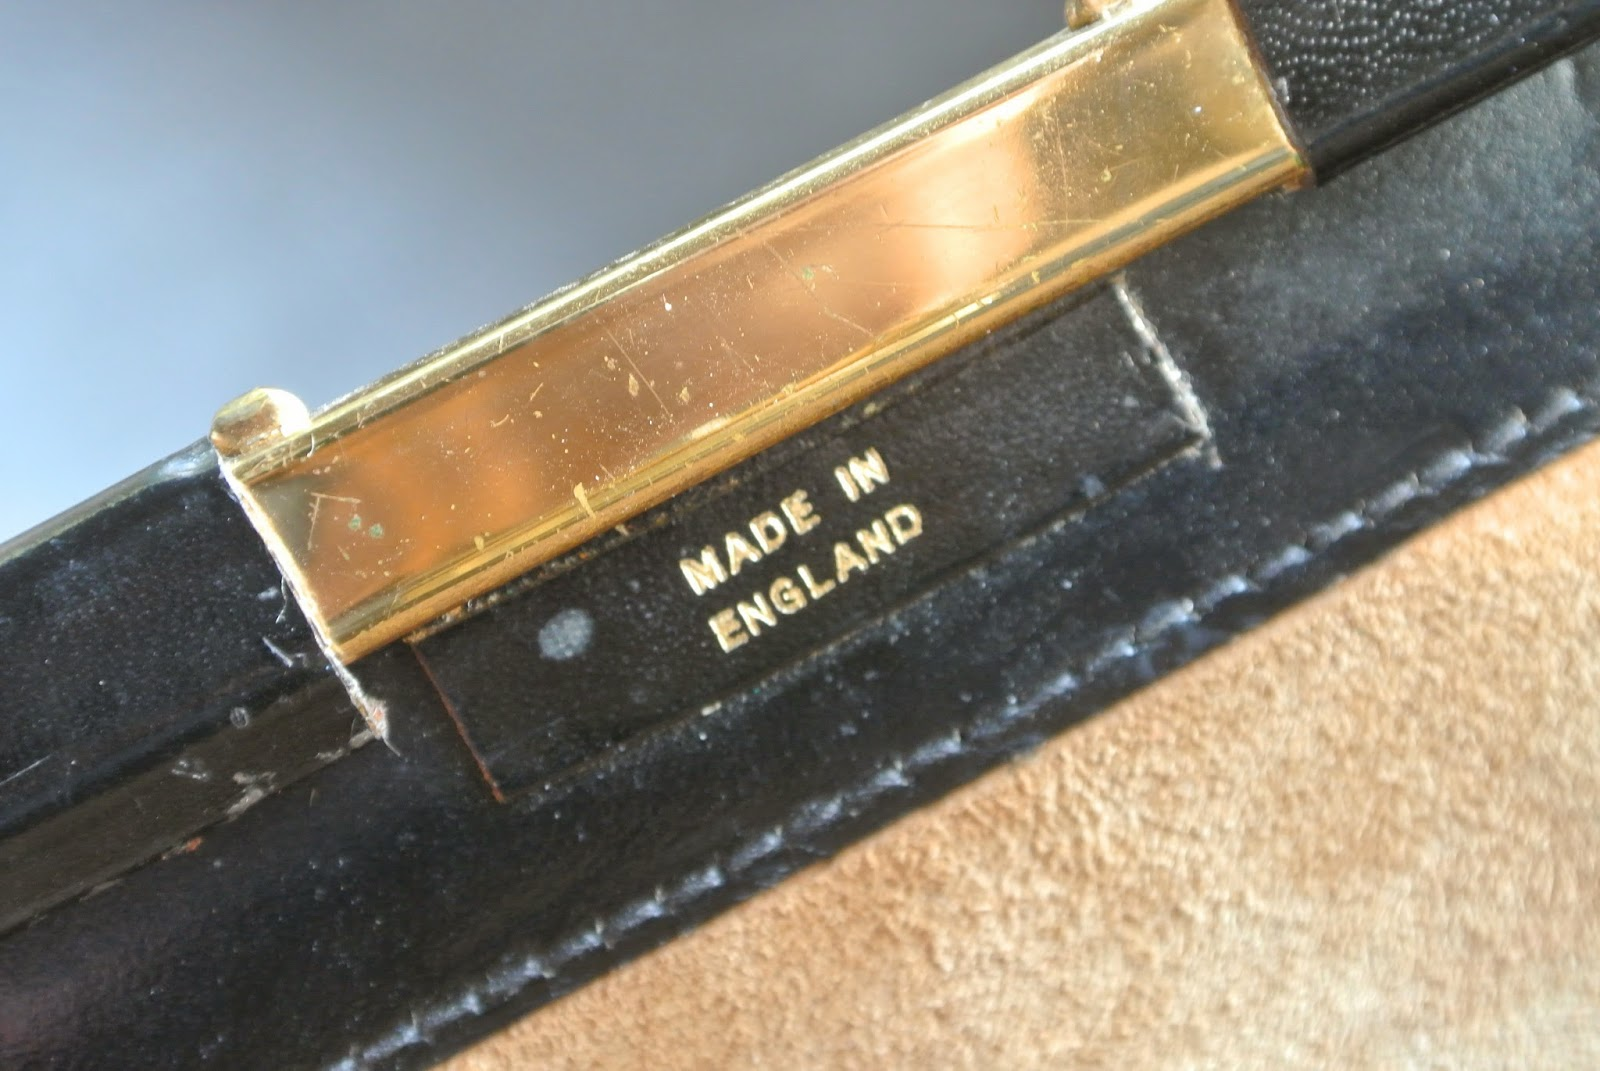 Made in England Label